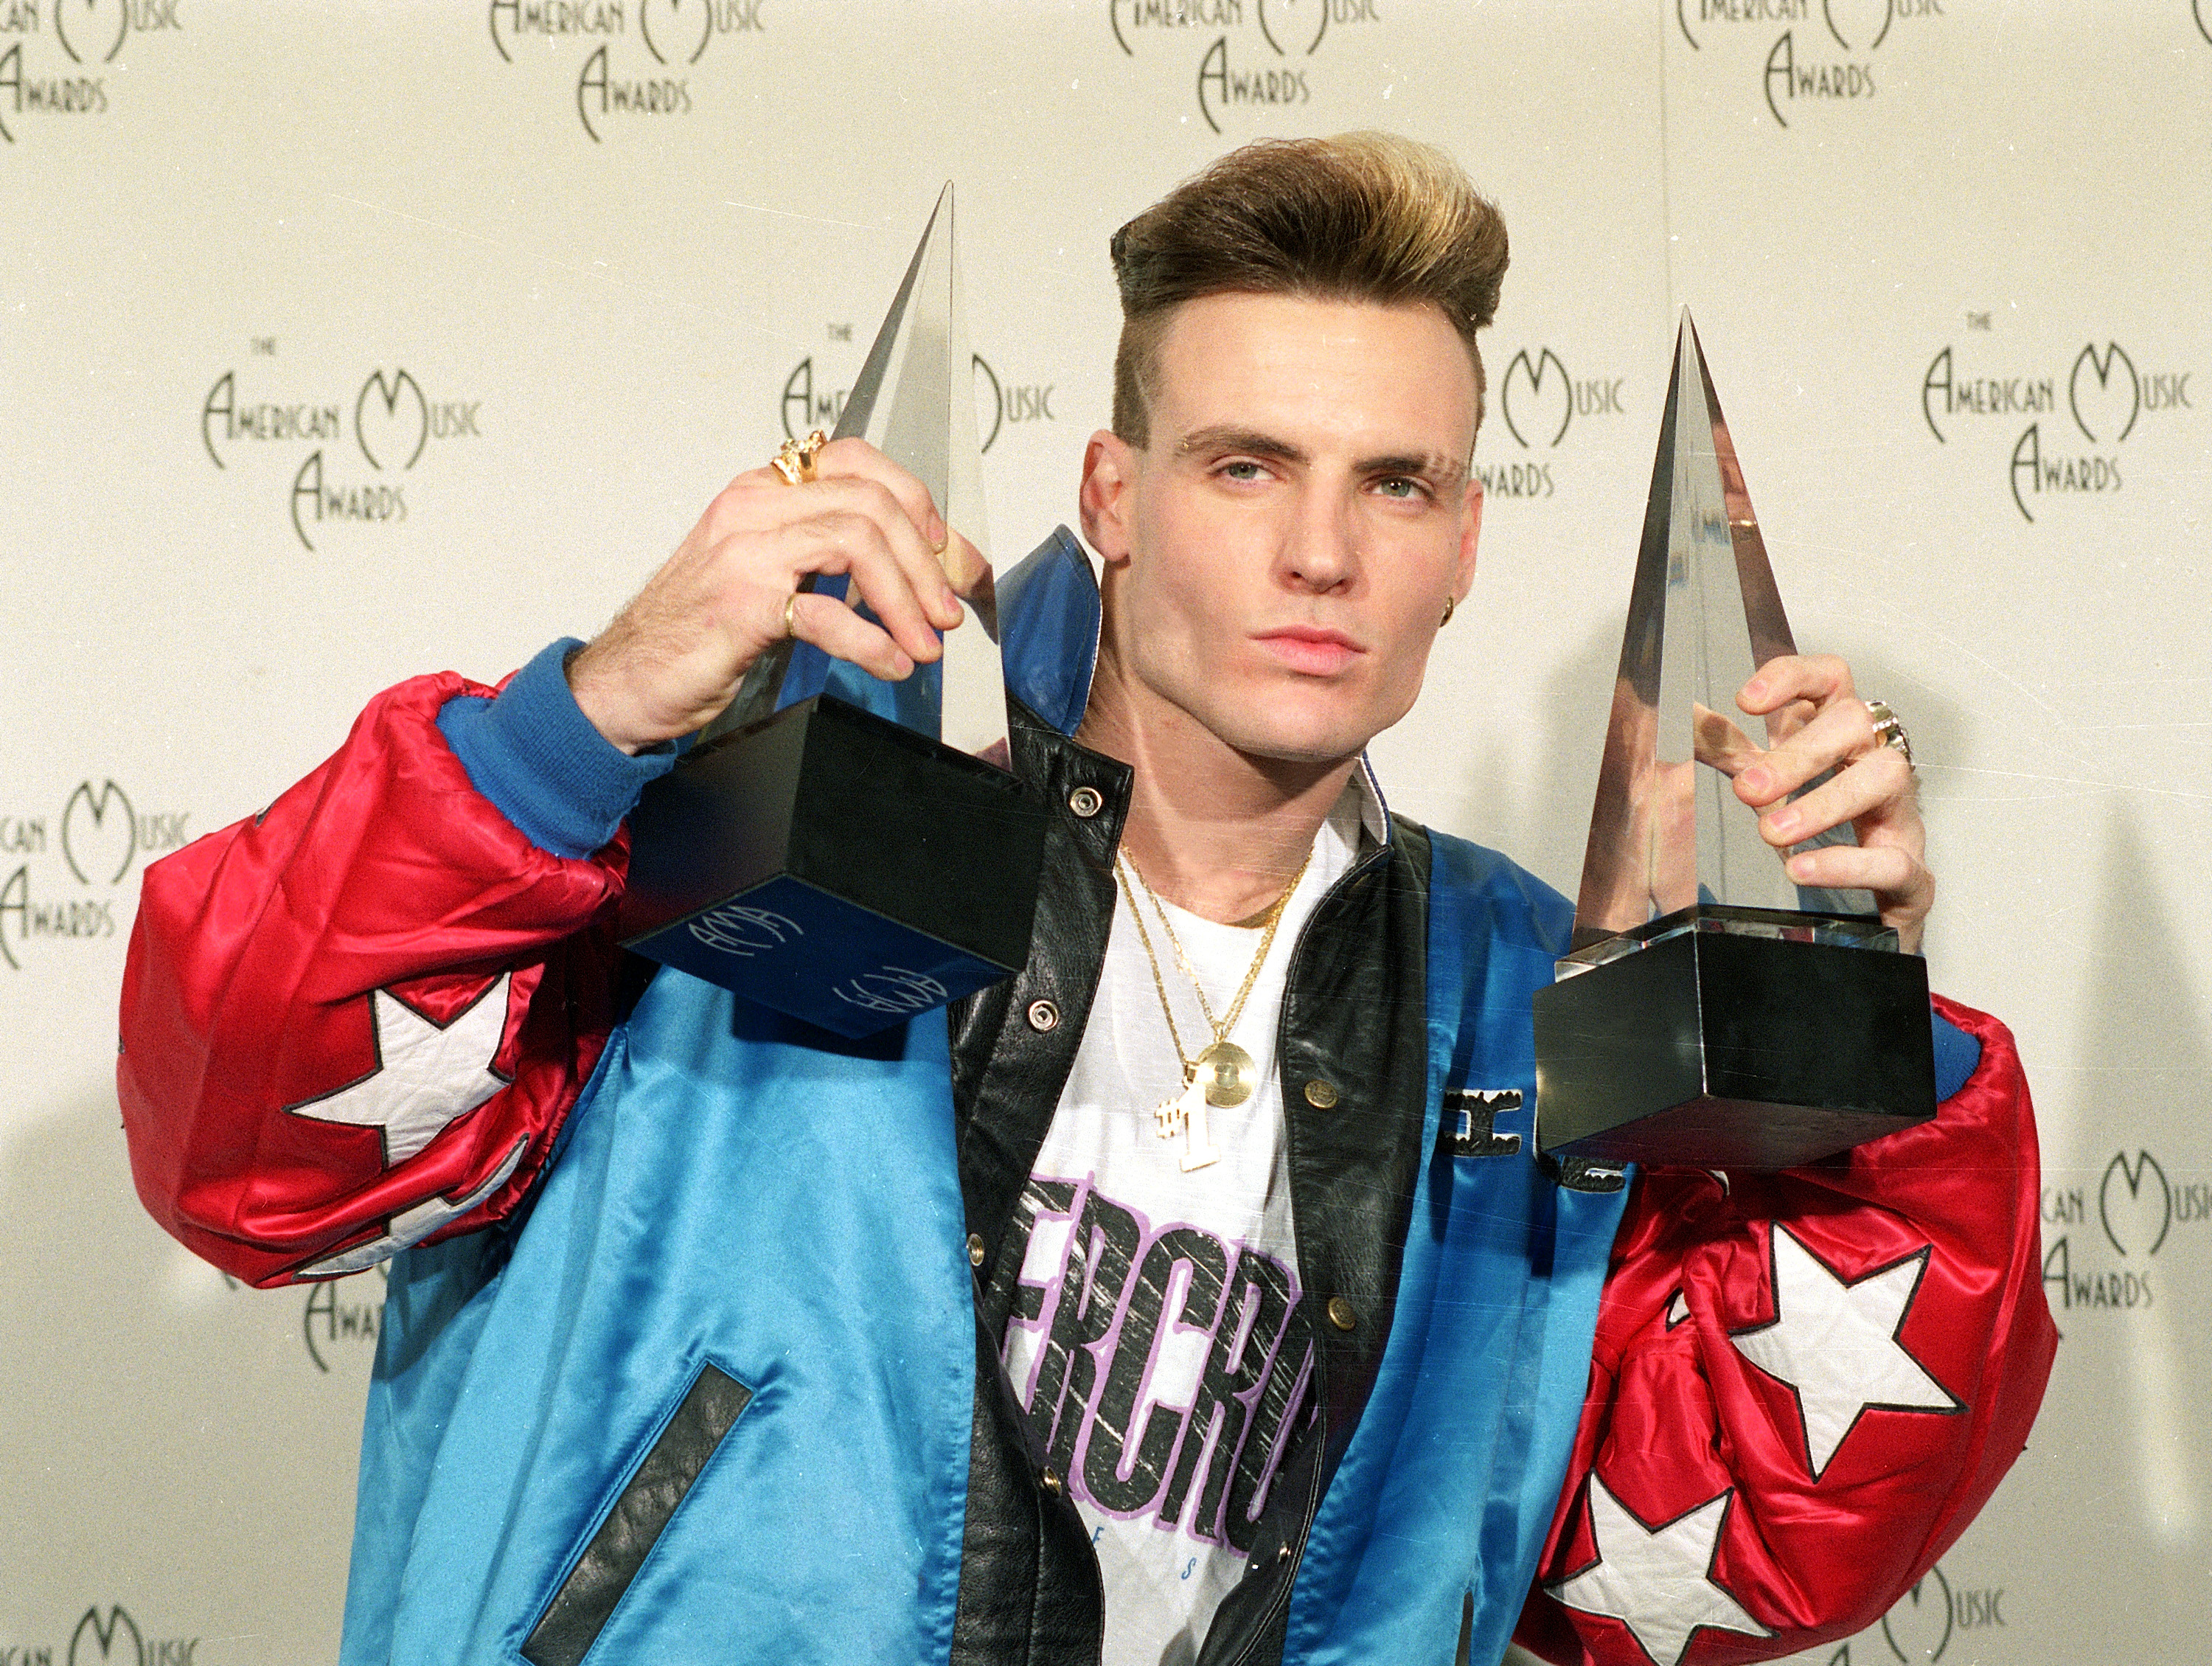 First Vanilla Ice Stole From Queen Now He Stole From